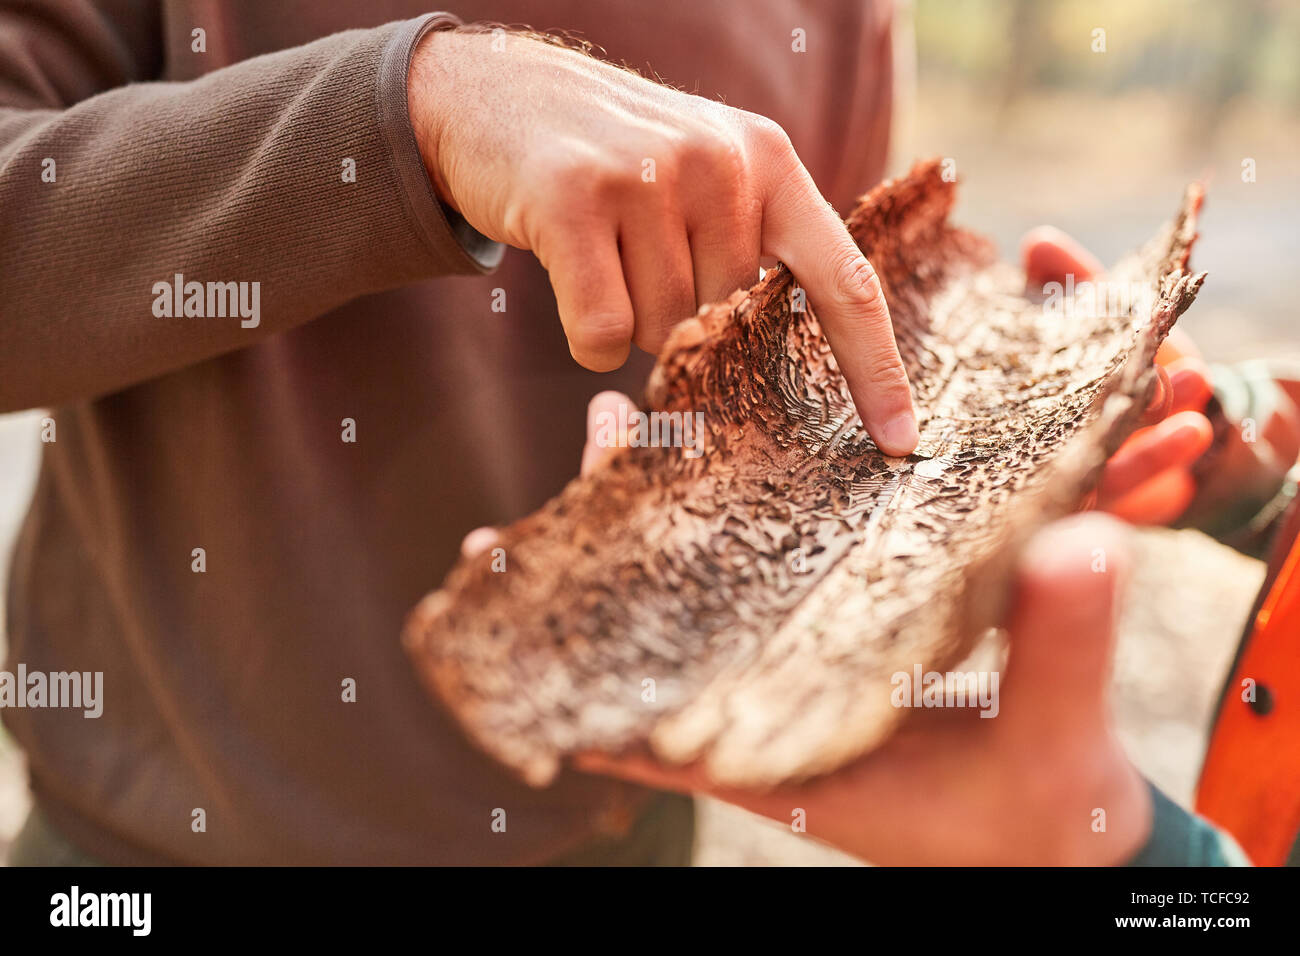 Forester points to tree bark with bark beetle infestation in pest control - Stock Image